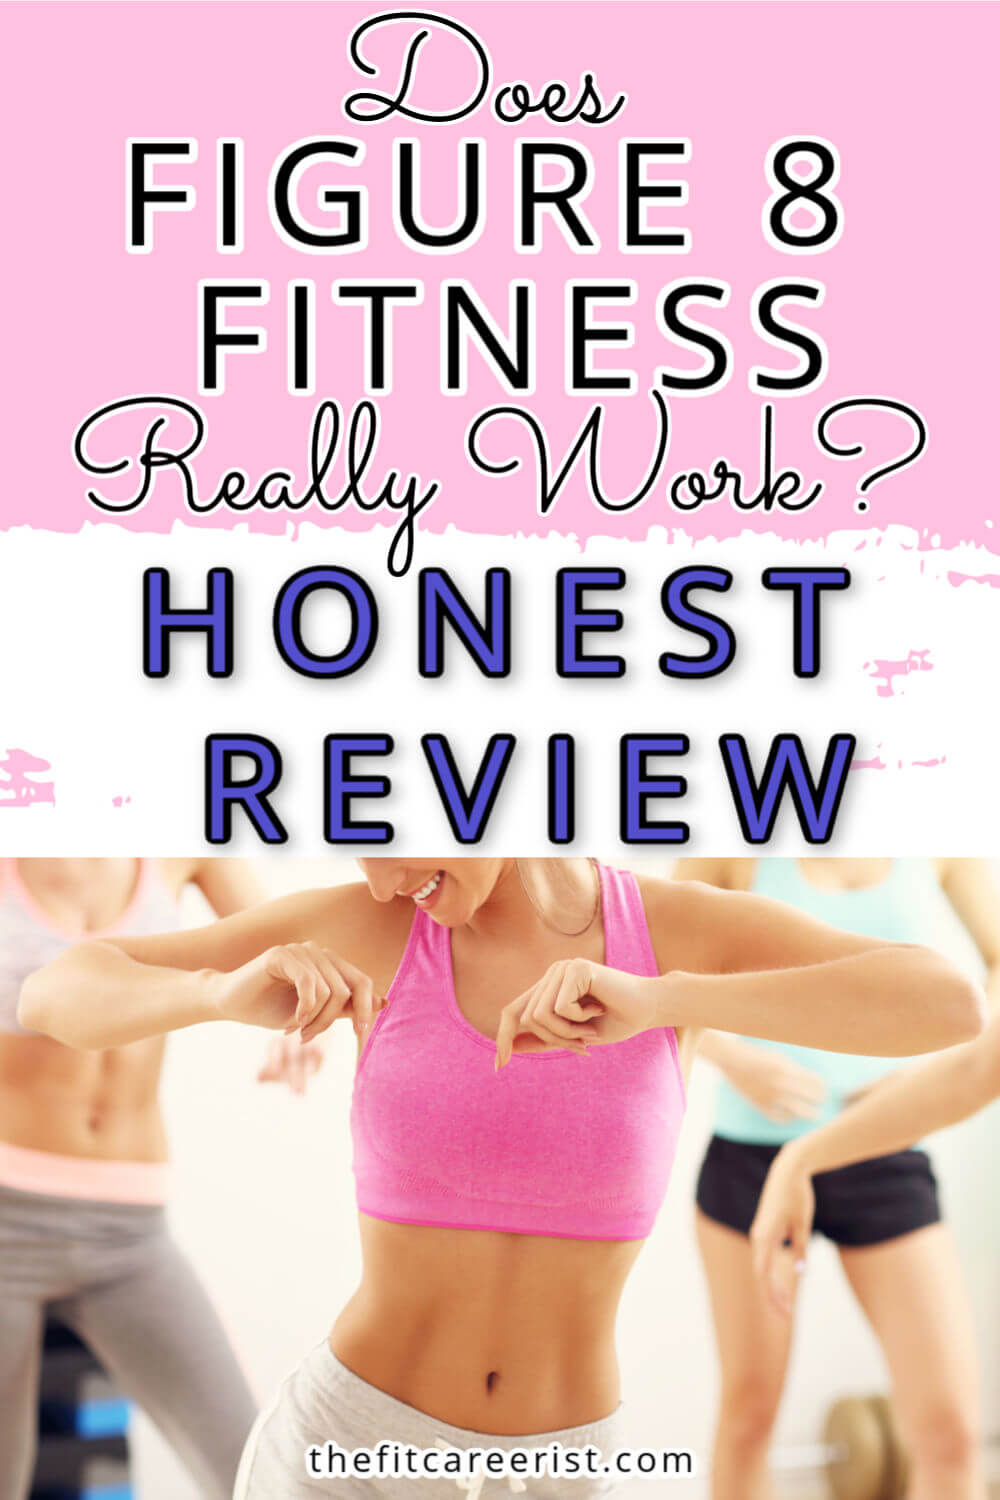 Figure 8 Fitness Review 2020 Dance Like Nobody's Watching